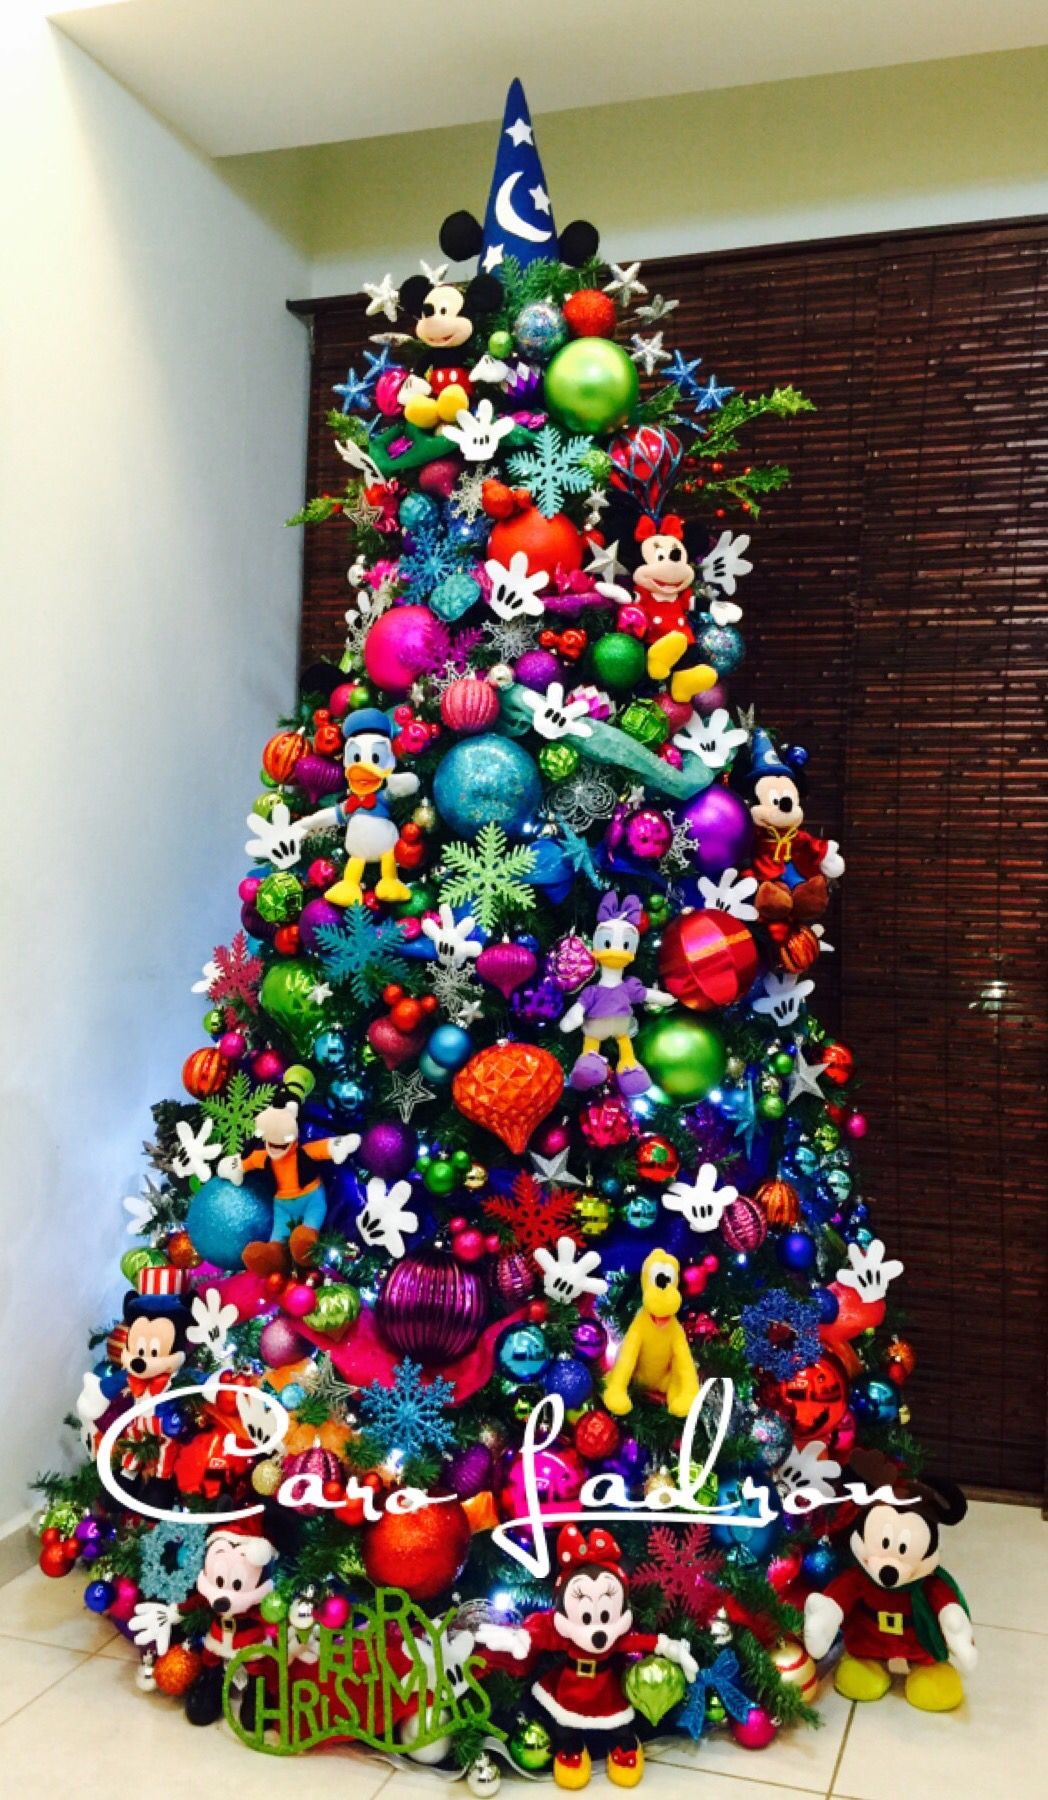 mickey mouse tree christmas tree ideas 2016 disney christmas tree decorations mickey mouse christmas - Disney Christmas Tree